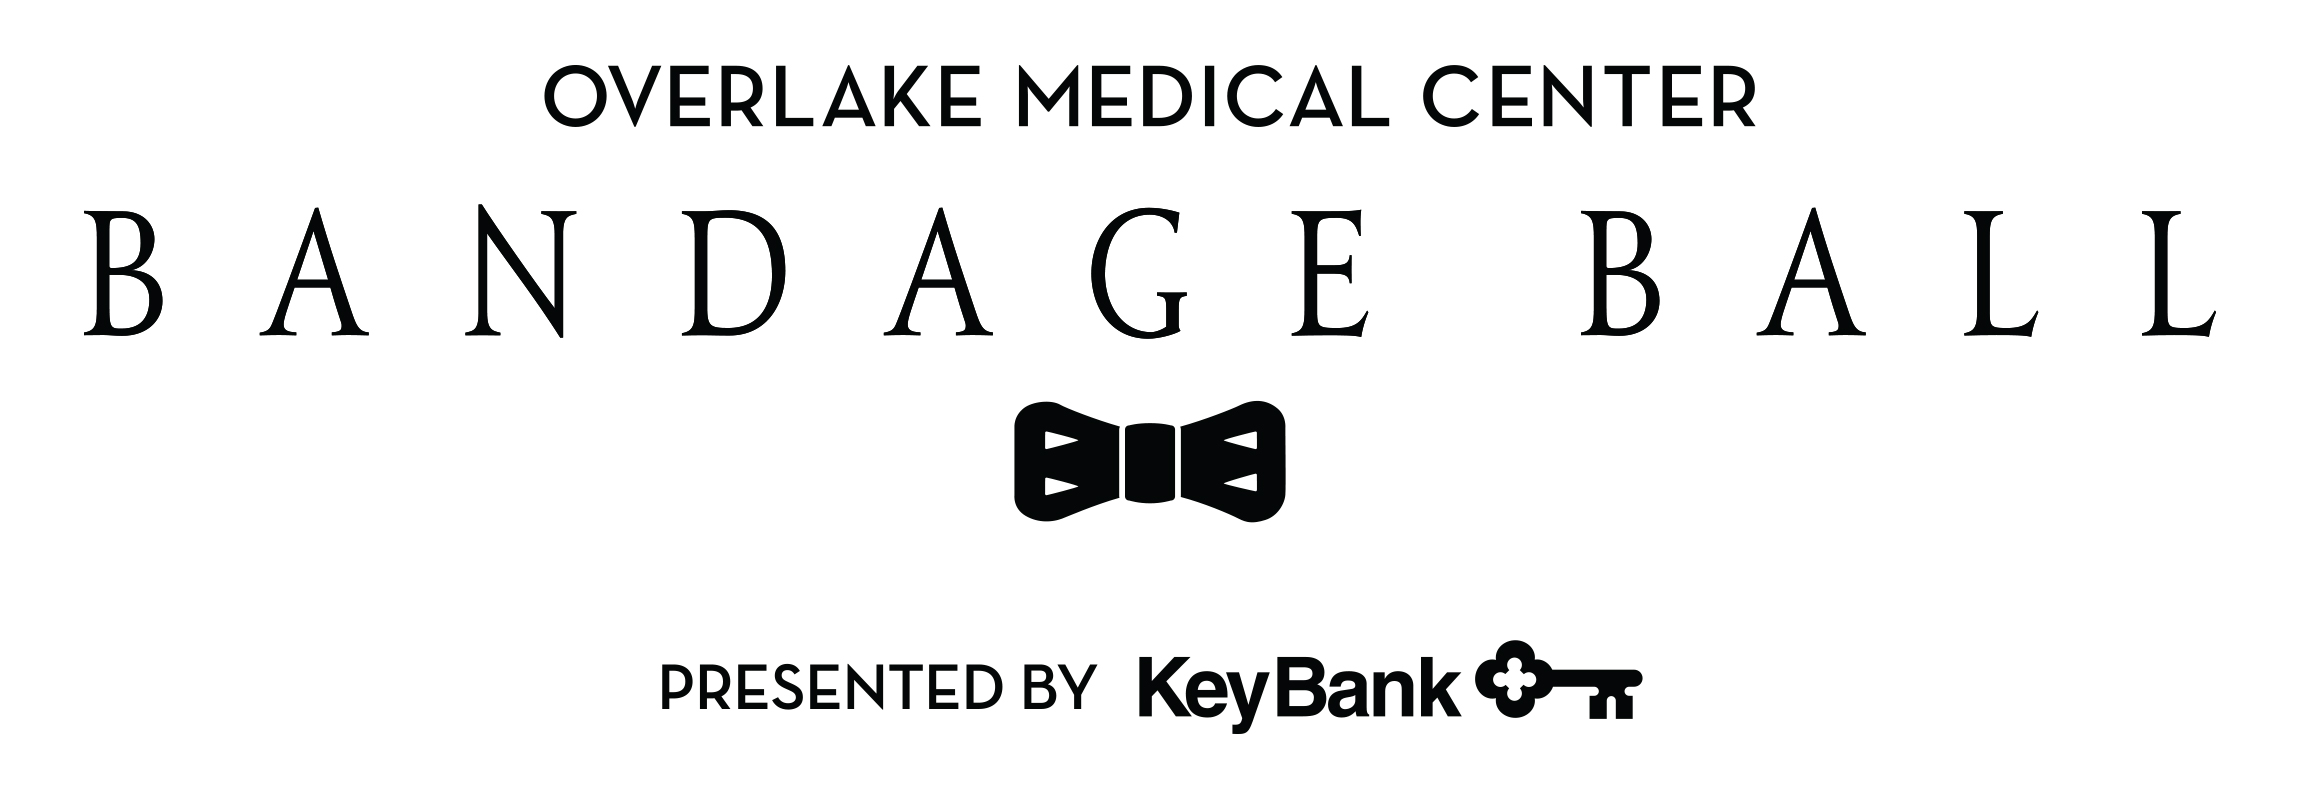 Bandage Ball Presented By Keybank Logo